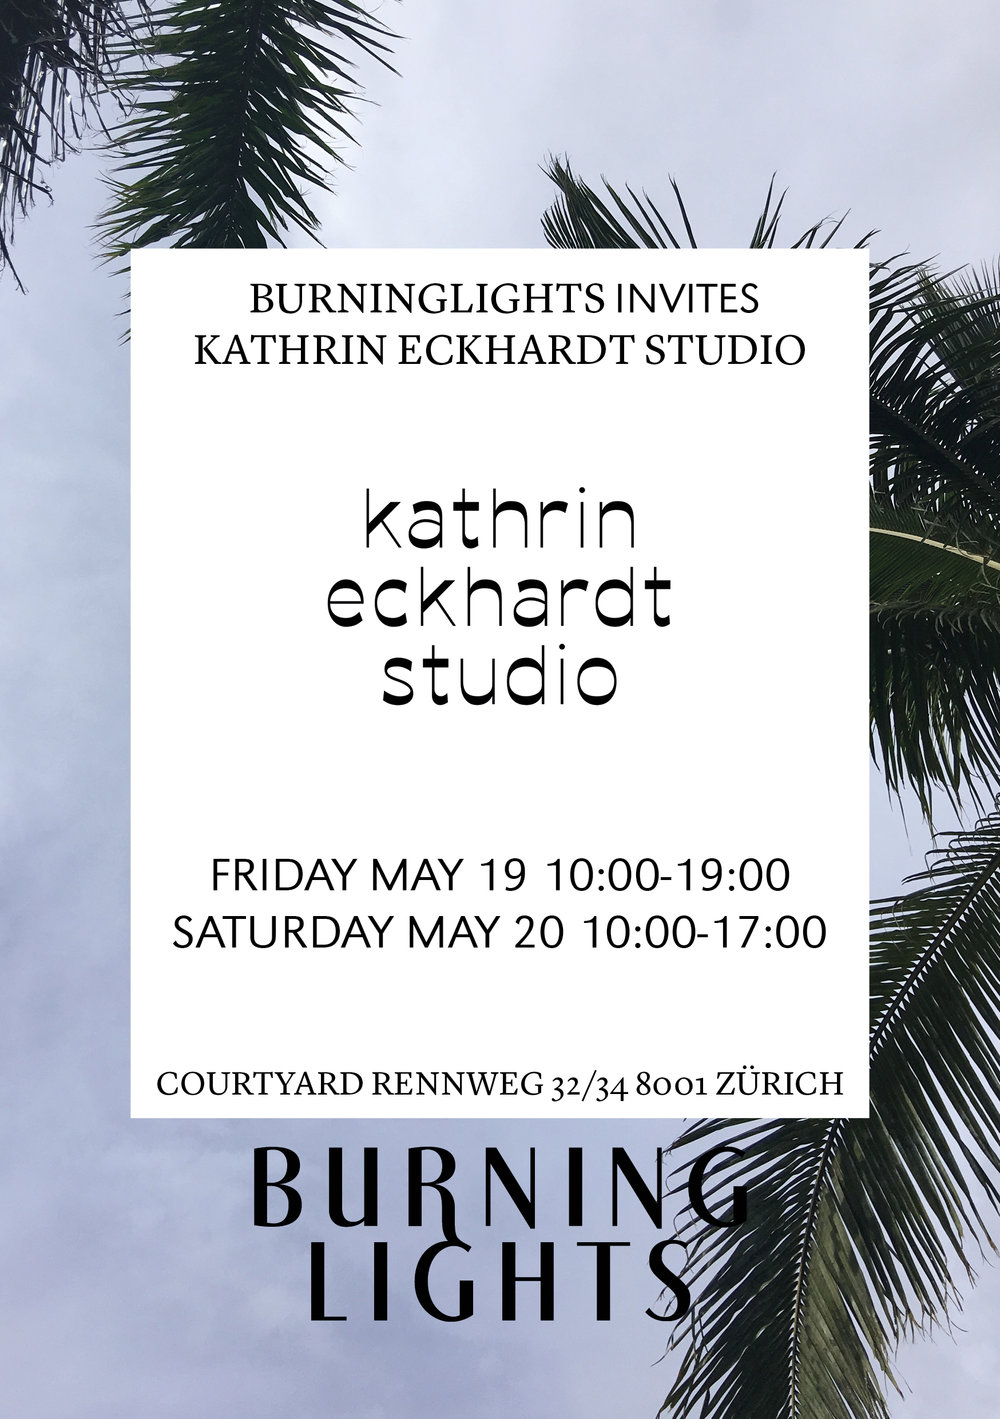 kathrineckhardtstudio_burninglights